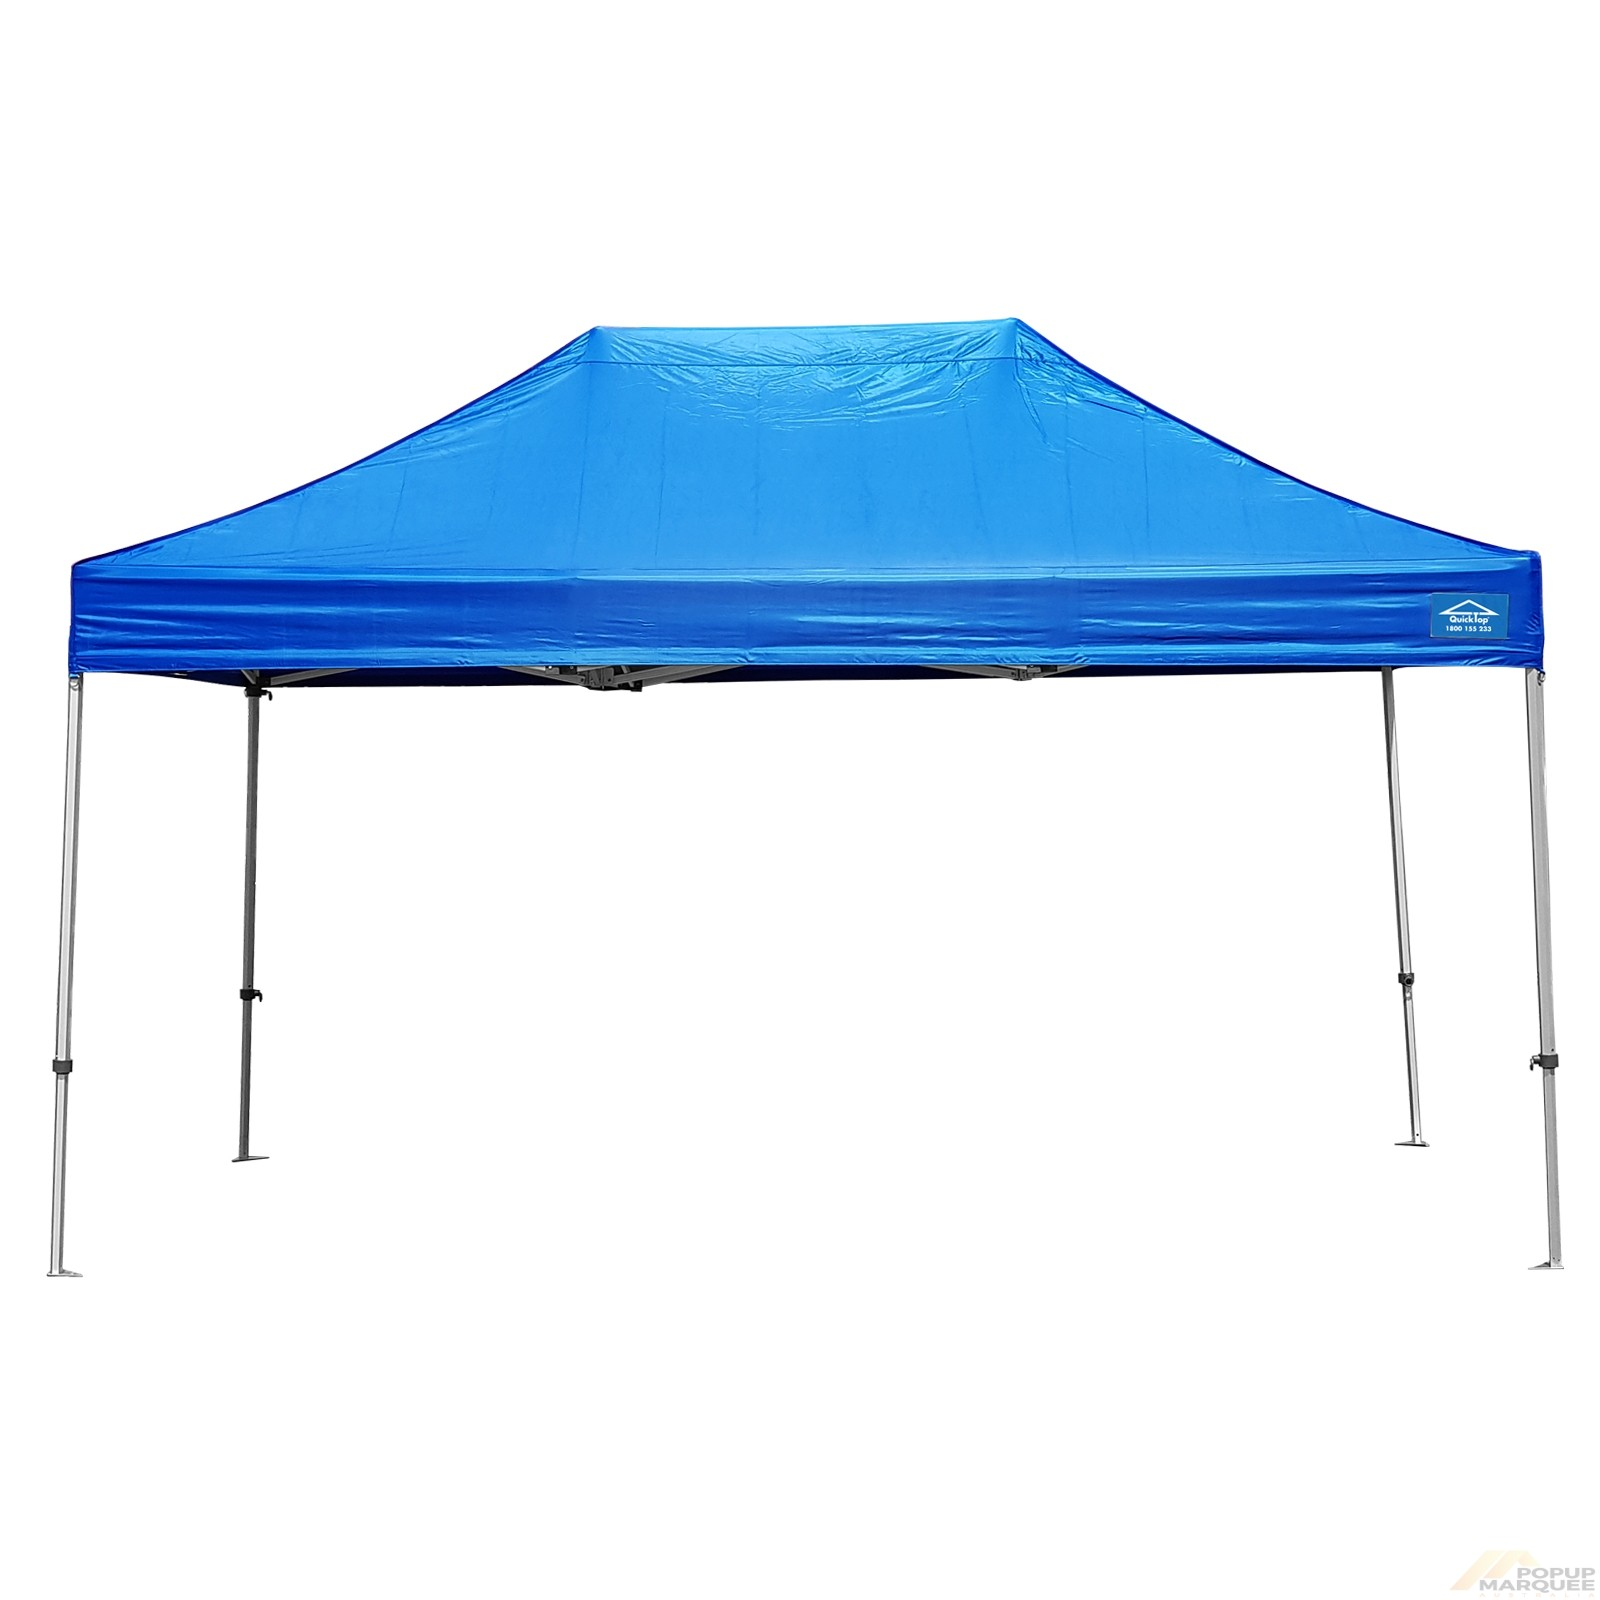 QuickTop 3x4.5m Blue Pop Up Marquee